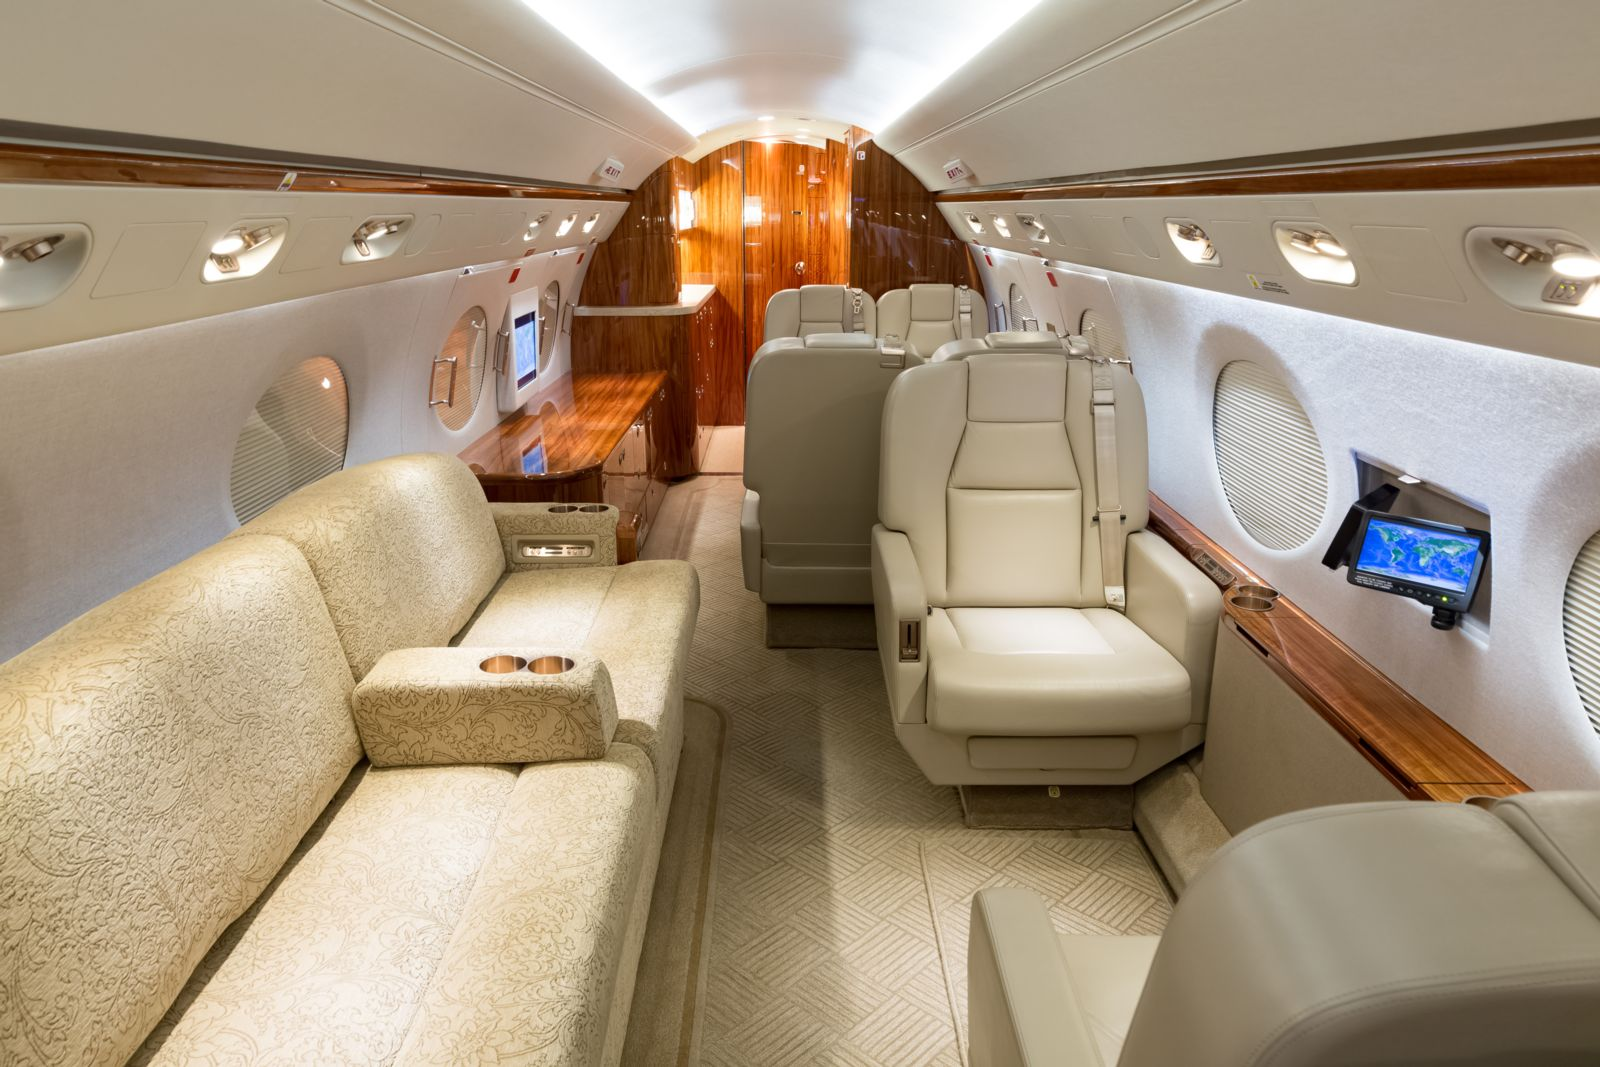 Gulfstream G450  S/N 4127 for sale | gallery image: /userfiles/images/G450_4127/mid%20aft.jpg